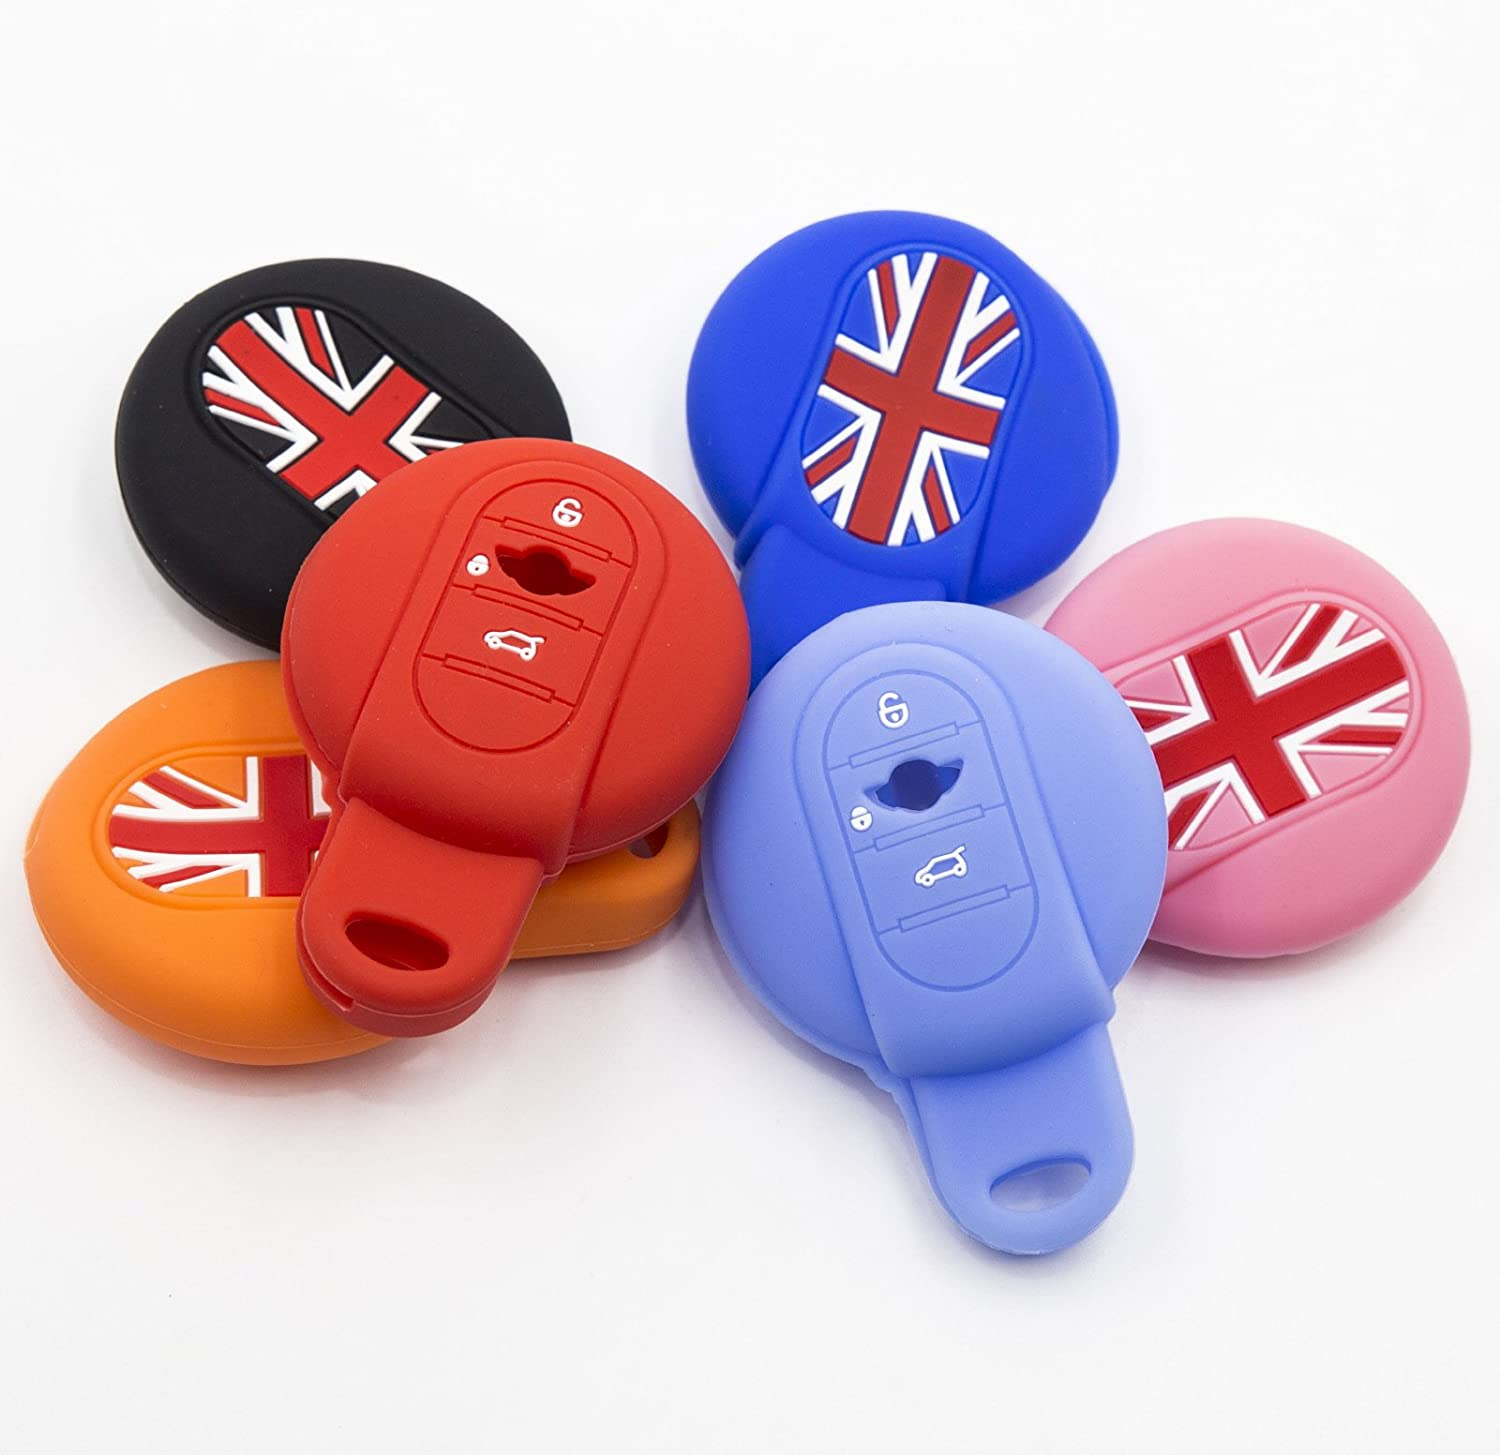 LIGHTKOREA Silicone Smart Key Case Cover For New Mini Cooper 3th Generation F55 F56 Club Man Country Man Pink